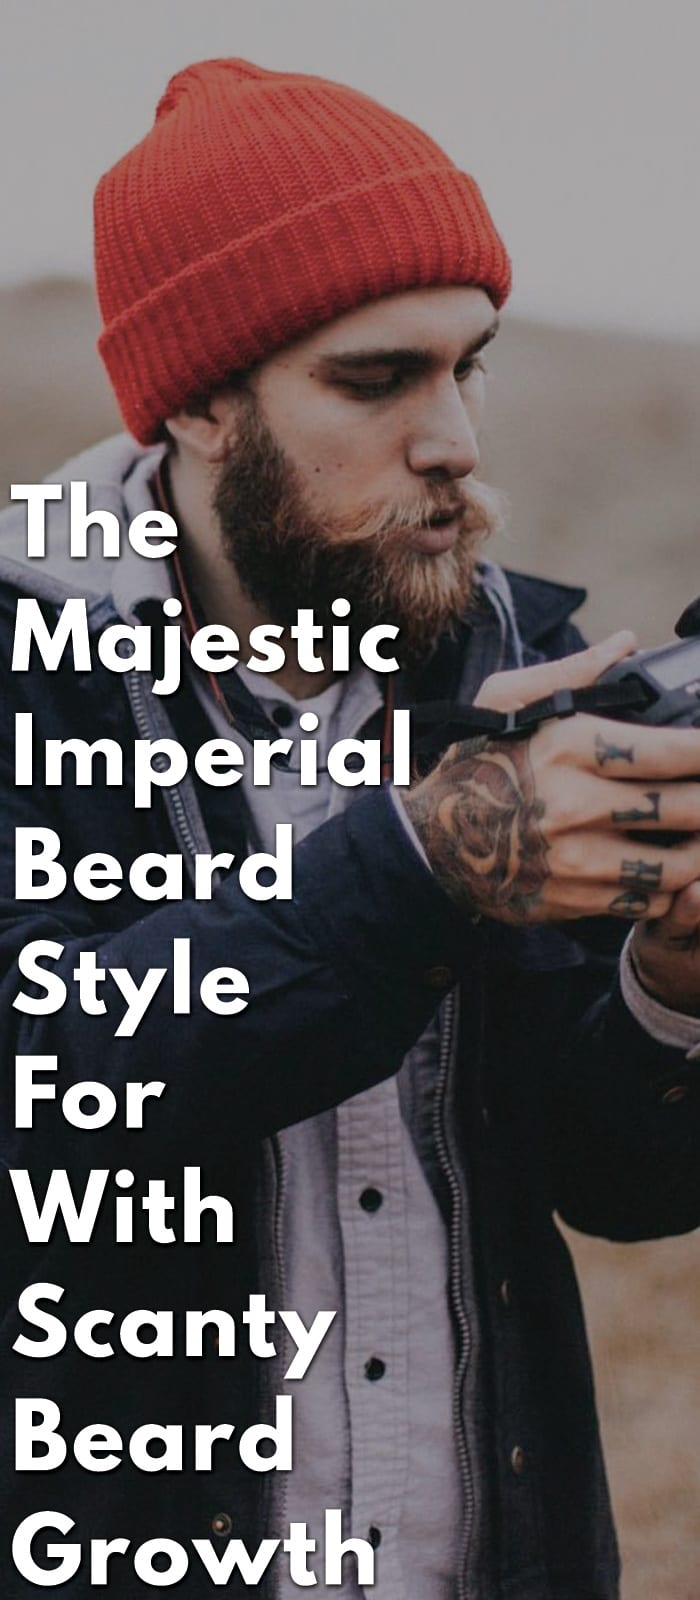 The-Majestic-Imperial-Beard-Style-For-With-Scanty-Beard-Growth.